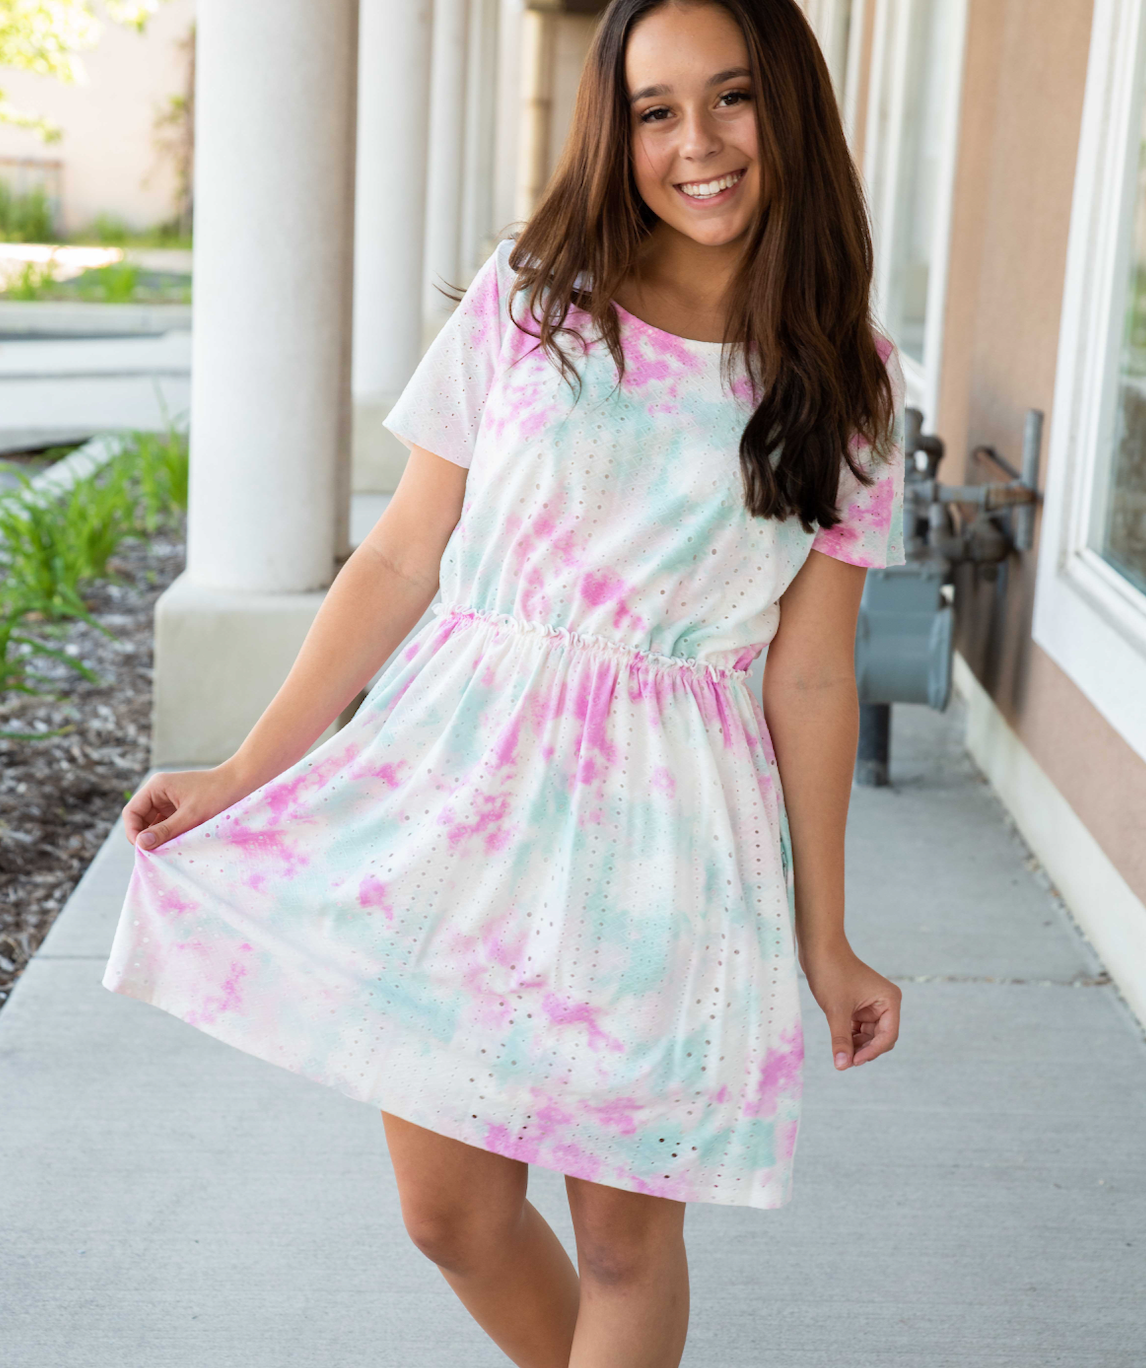 Tie Dye Eyelet dress in Teal & Pink - Duckthreads